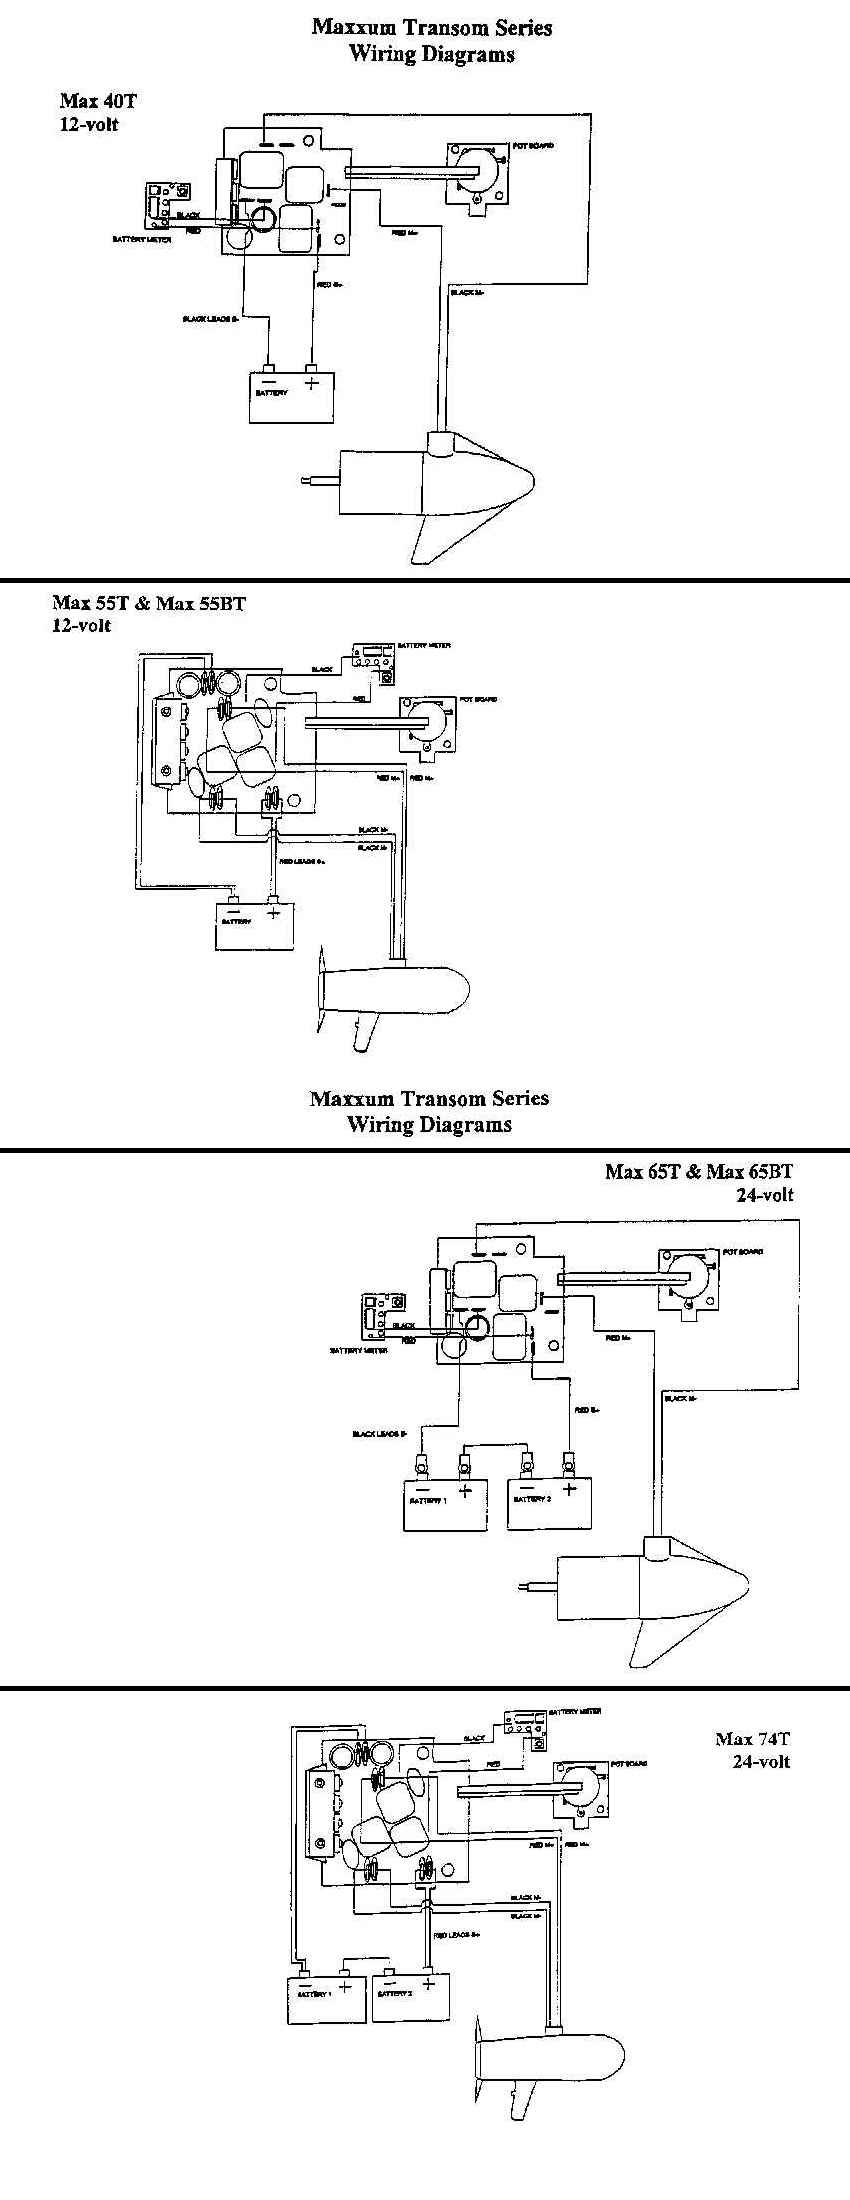 DIAGRAM] Minn Kota Endura Wiring Diagram FULL Version HD Quality Wiring  Diagram - EHRDIAGRAM1.HOTEL-DU-COMMERCE-AURIOL.FR  ehrdiagram1.hotel-du-commerce-auriol.fr